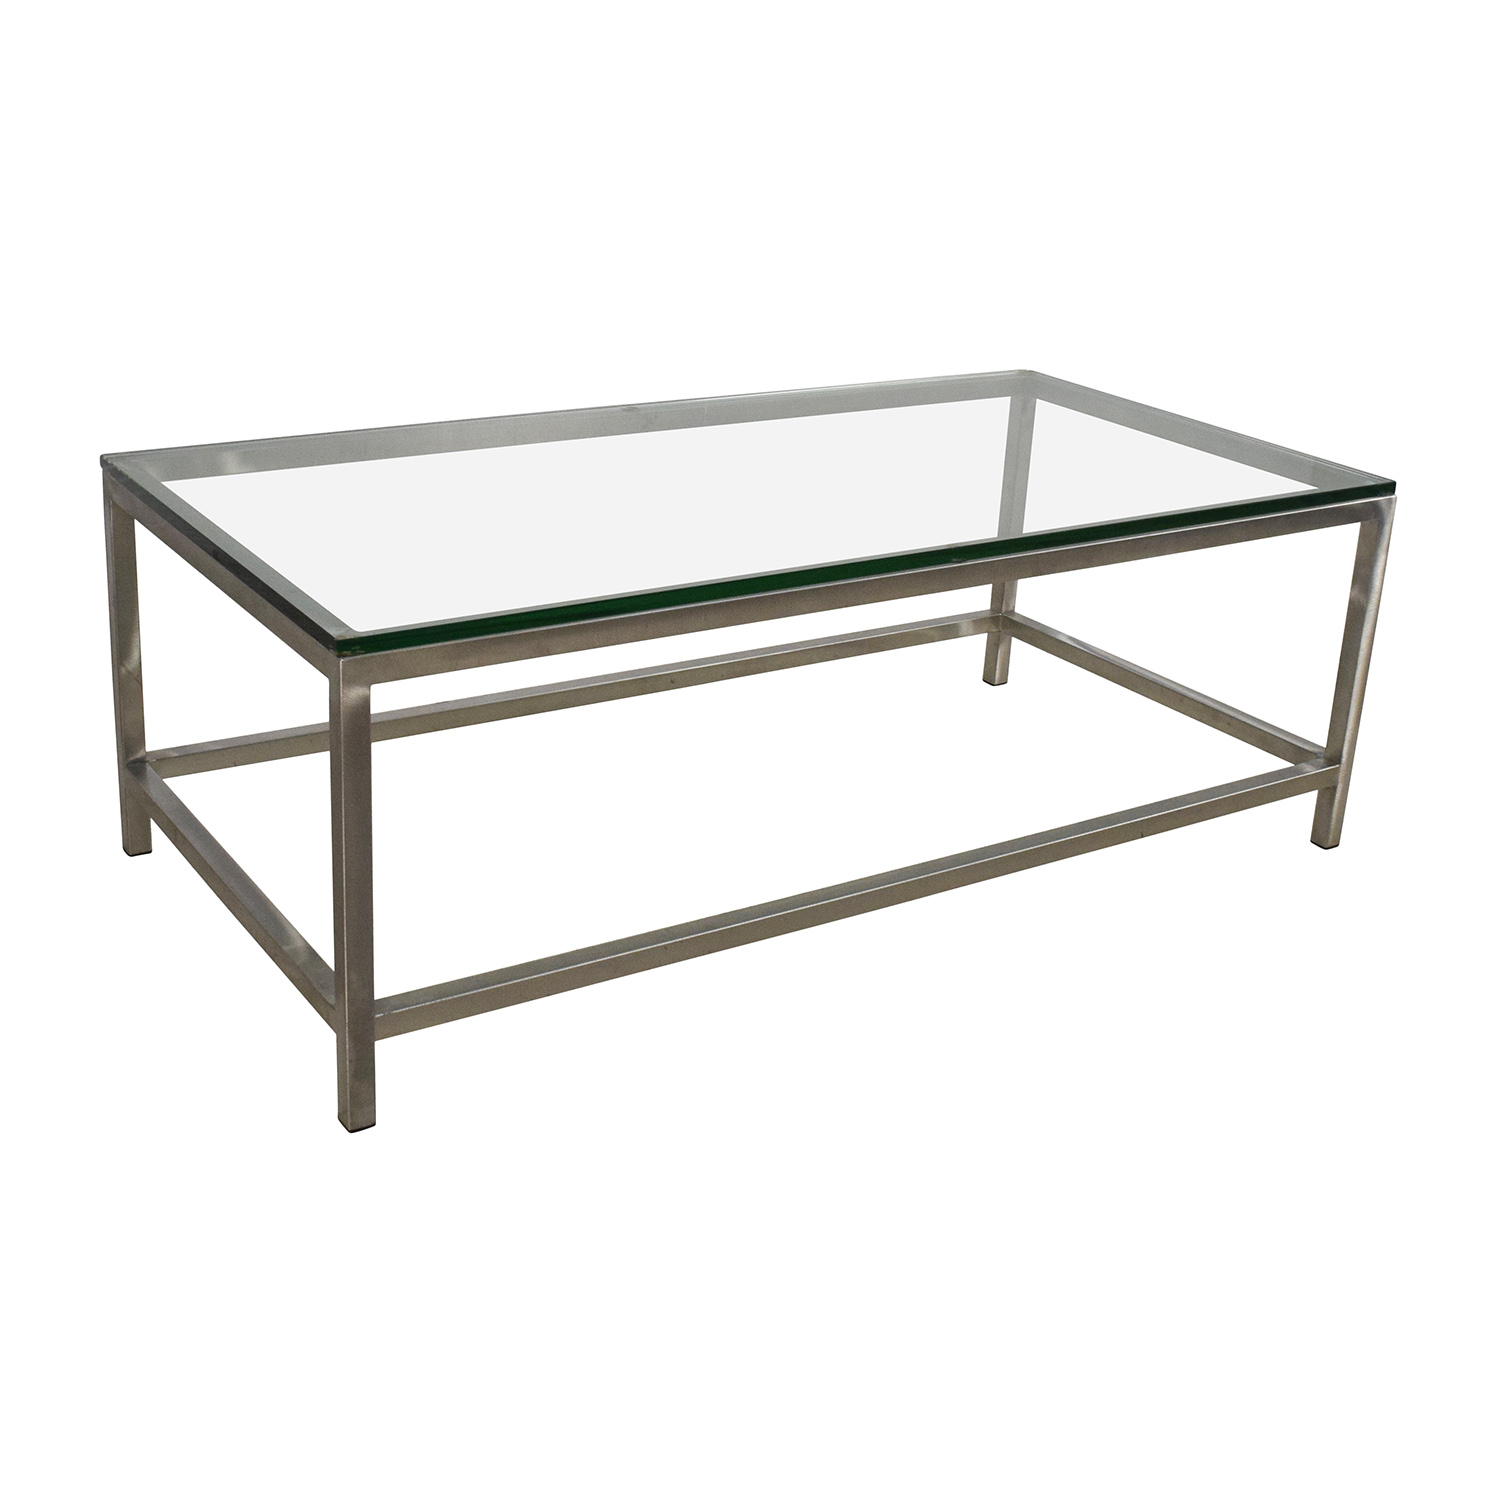 64 Off Crate And Barrel Crate Barrel Era Rectangular Glass Top Coffee Table Tables